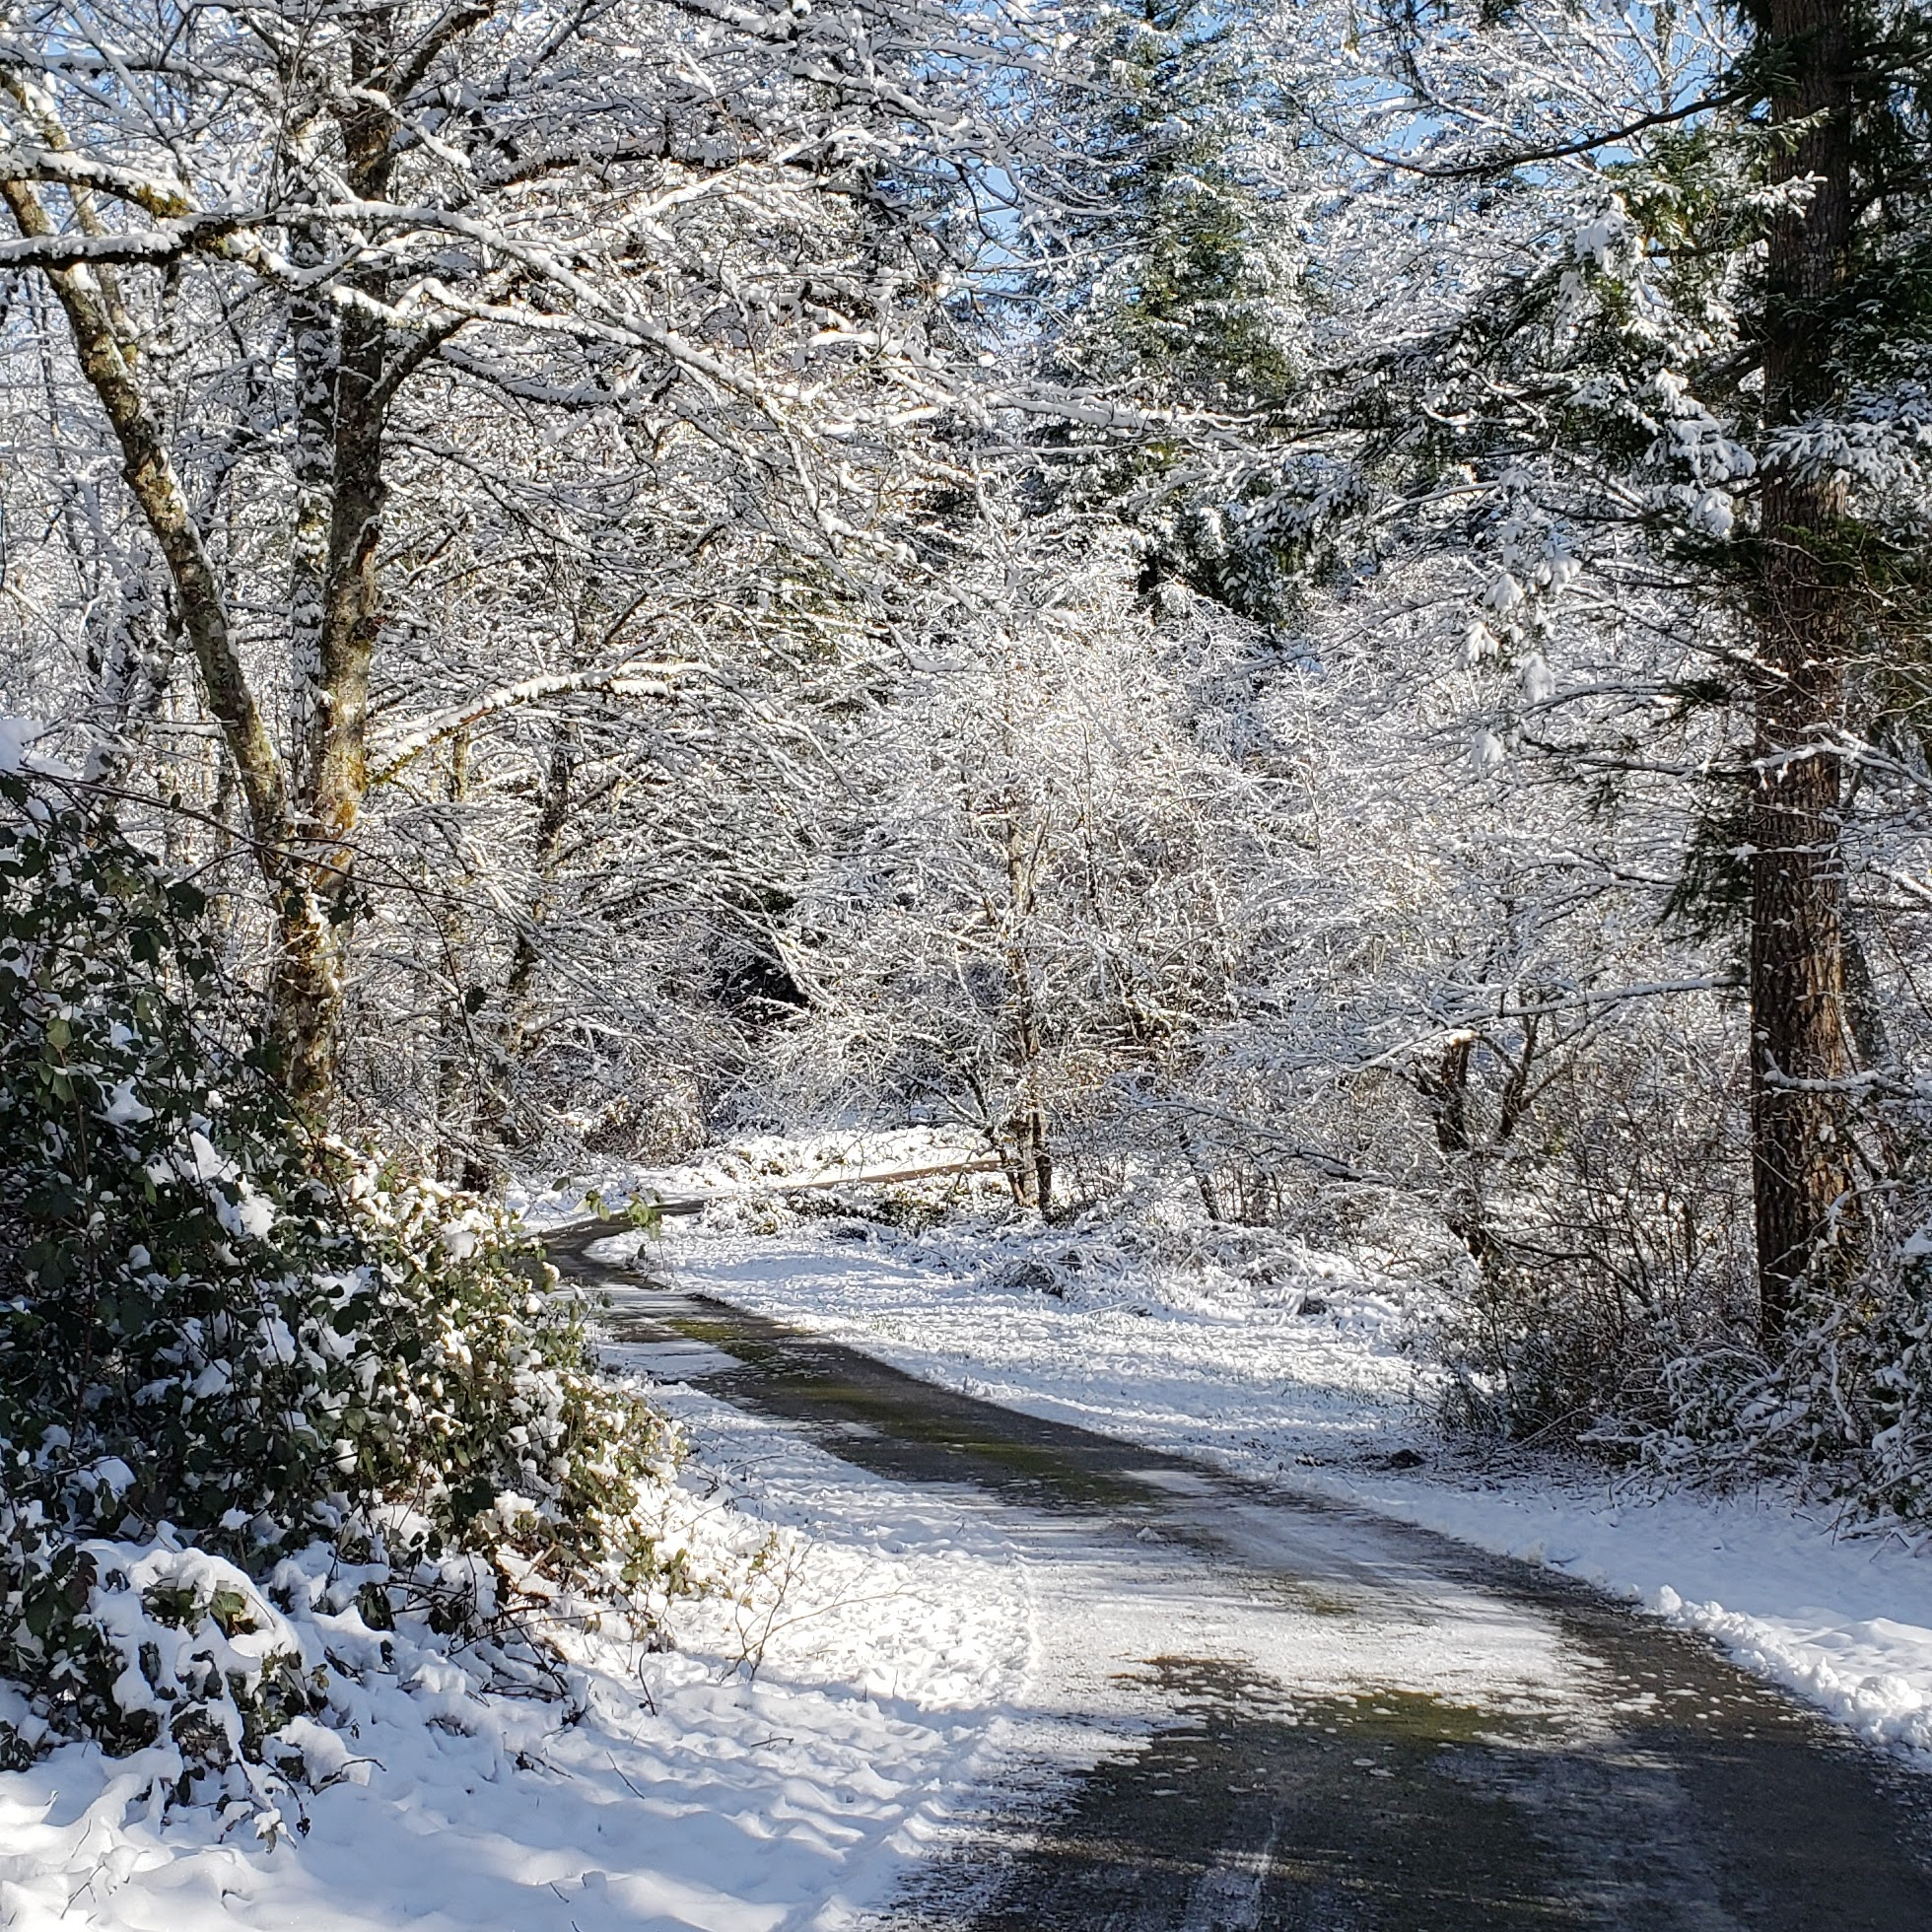 Image of a country road in winter